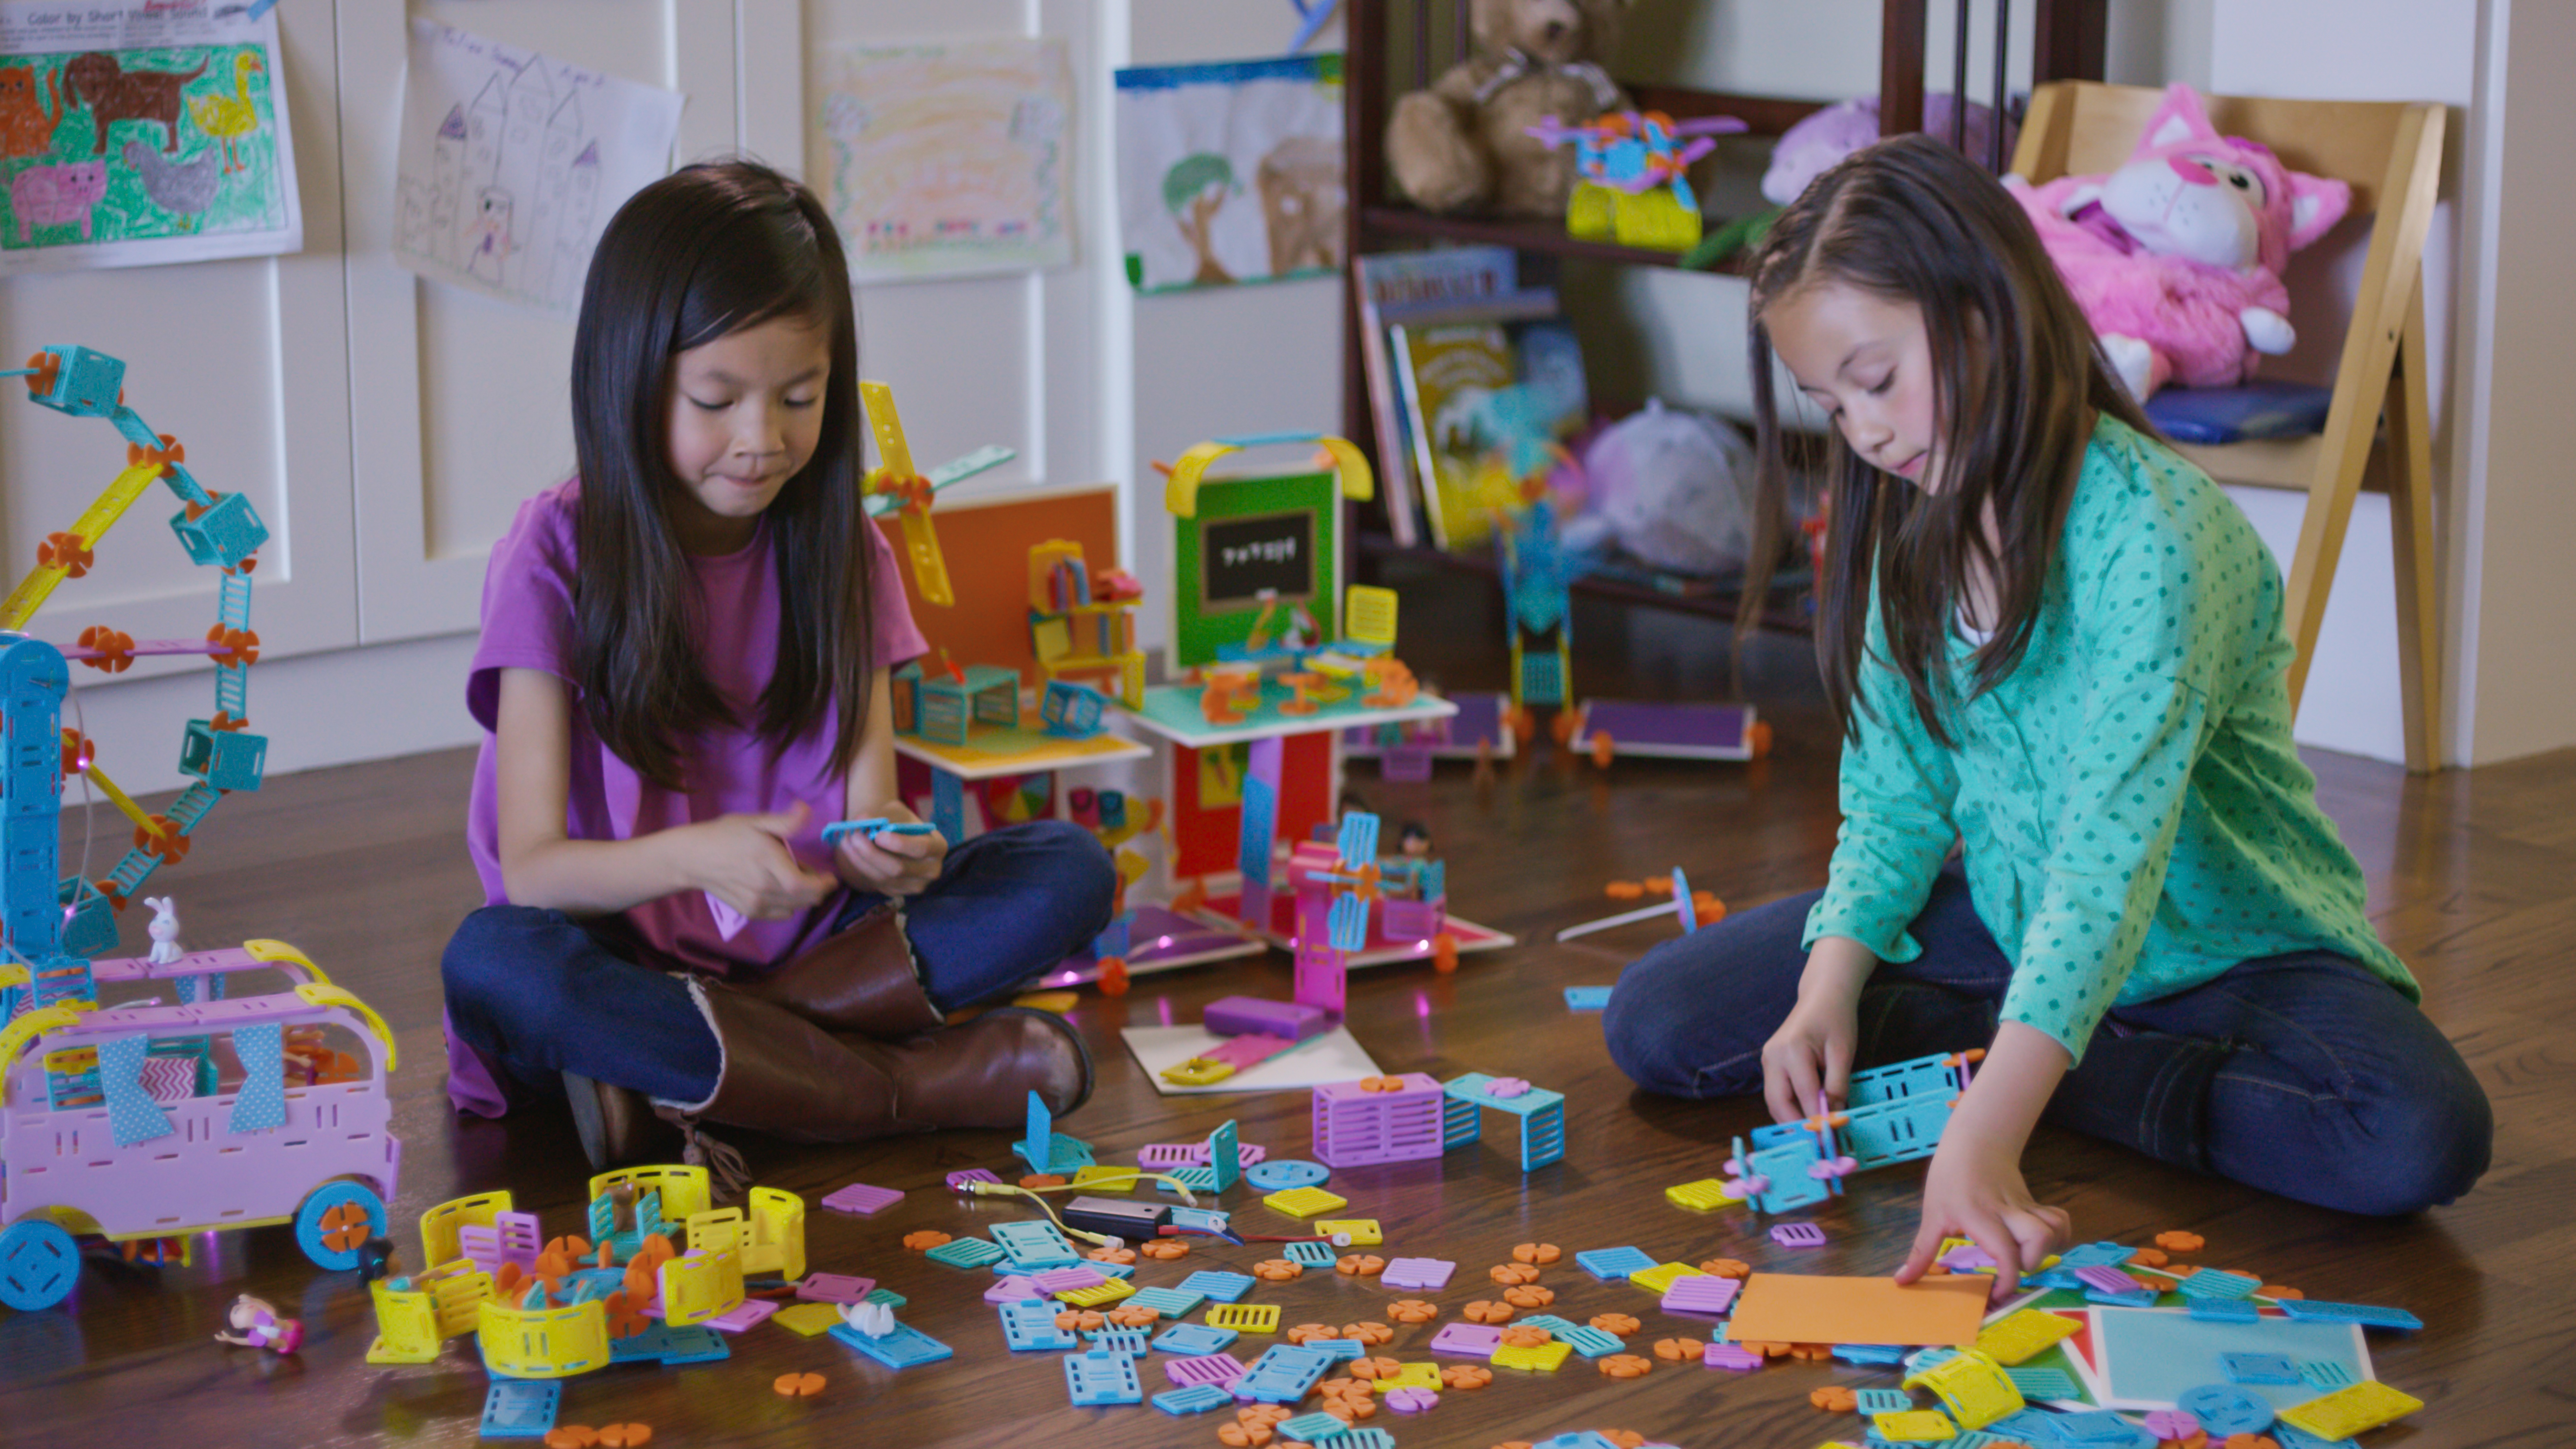 Toys For 9 Year Olds Can Invent : The toys that will actually teach your girls engineering skills